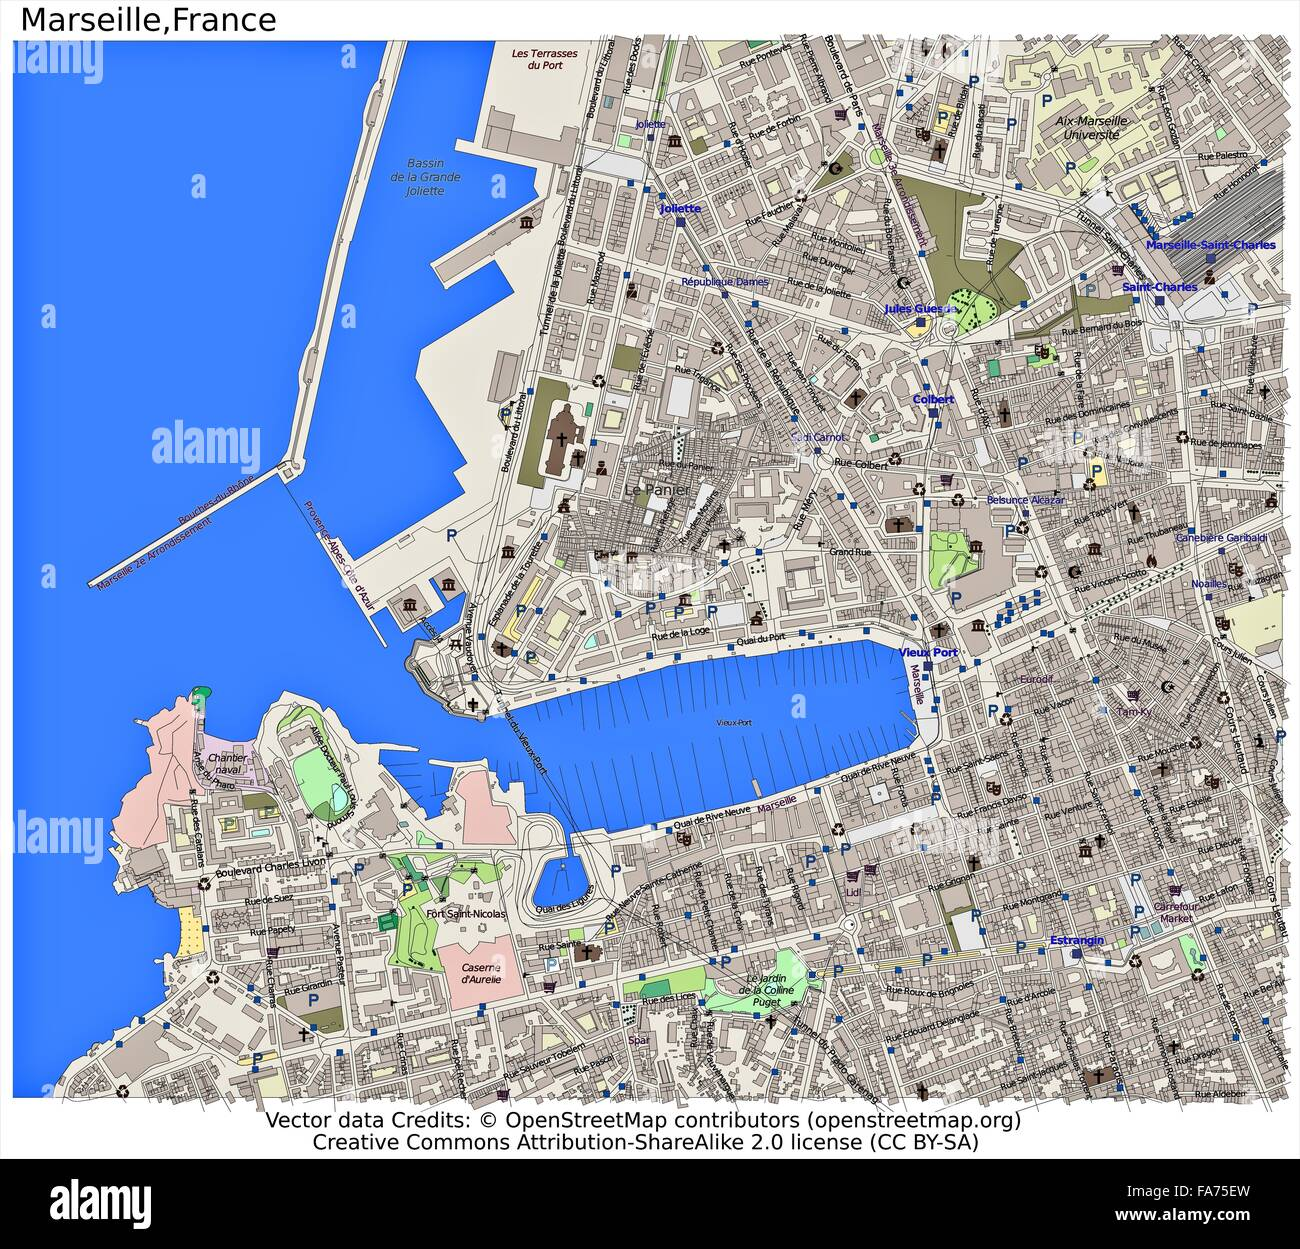 France Location Map Stock Photos & France Location Map Stock ...